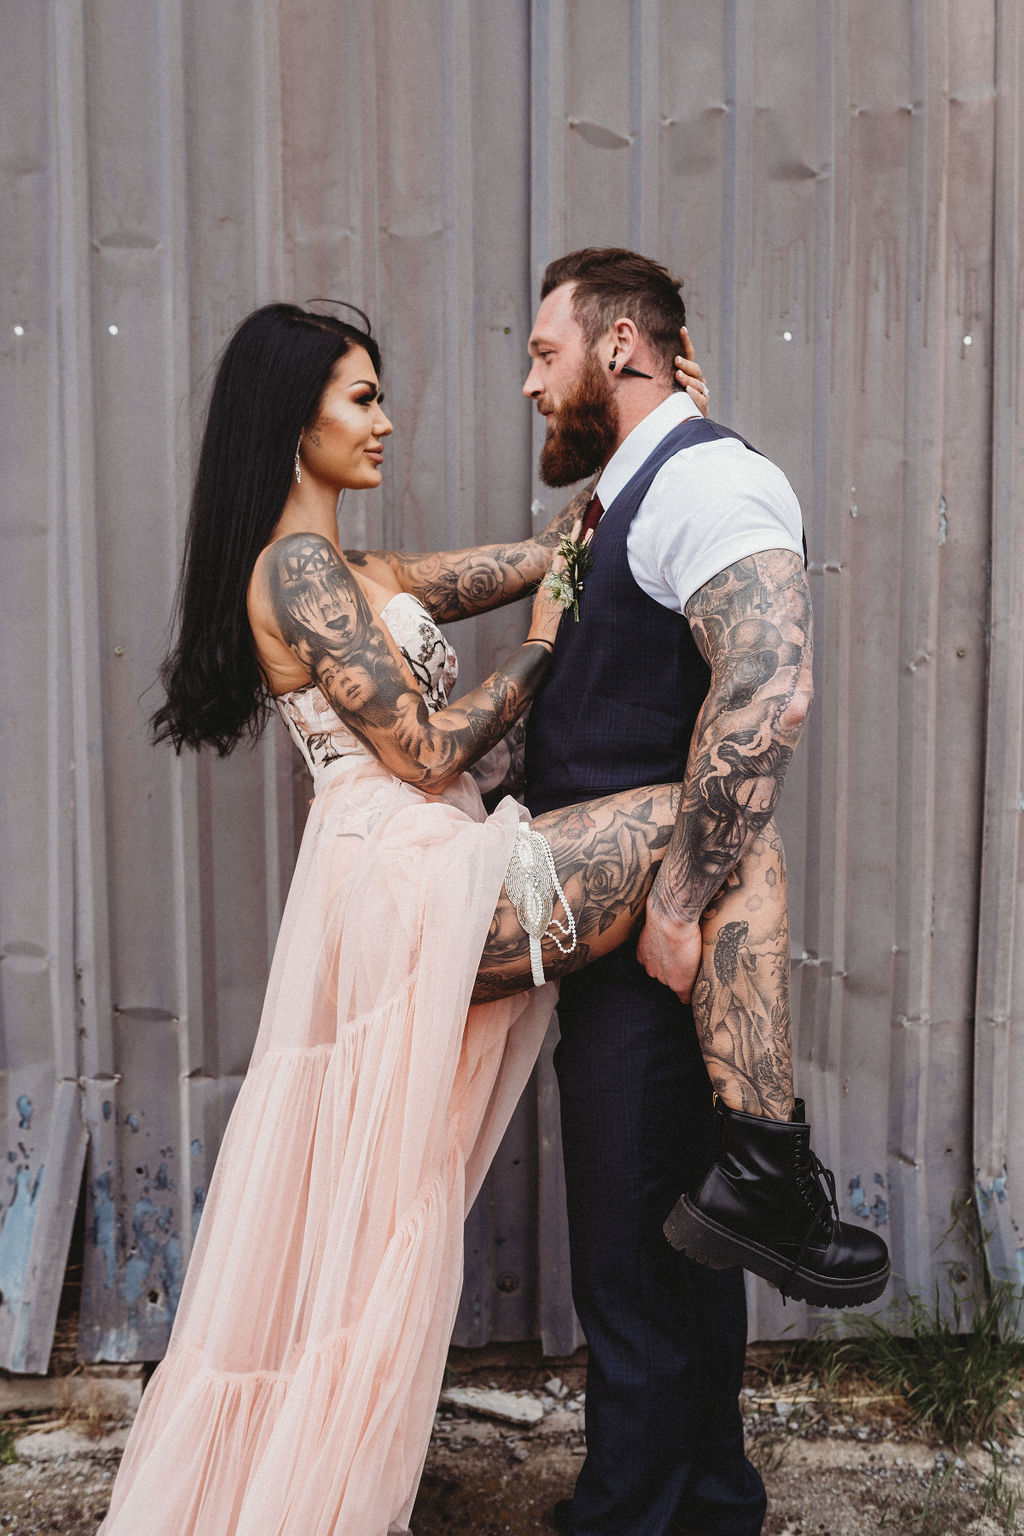 alternative farm wedding, edgy wedding, tattooed wedding, alternative wedding - industrial wedding venue